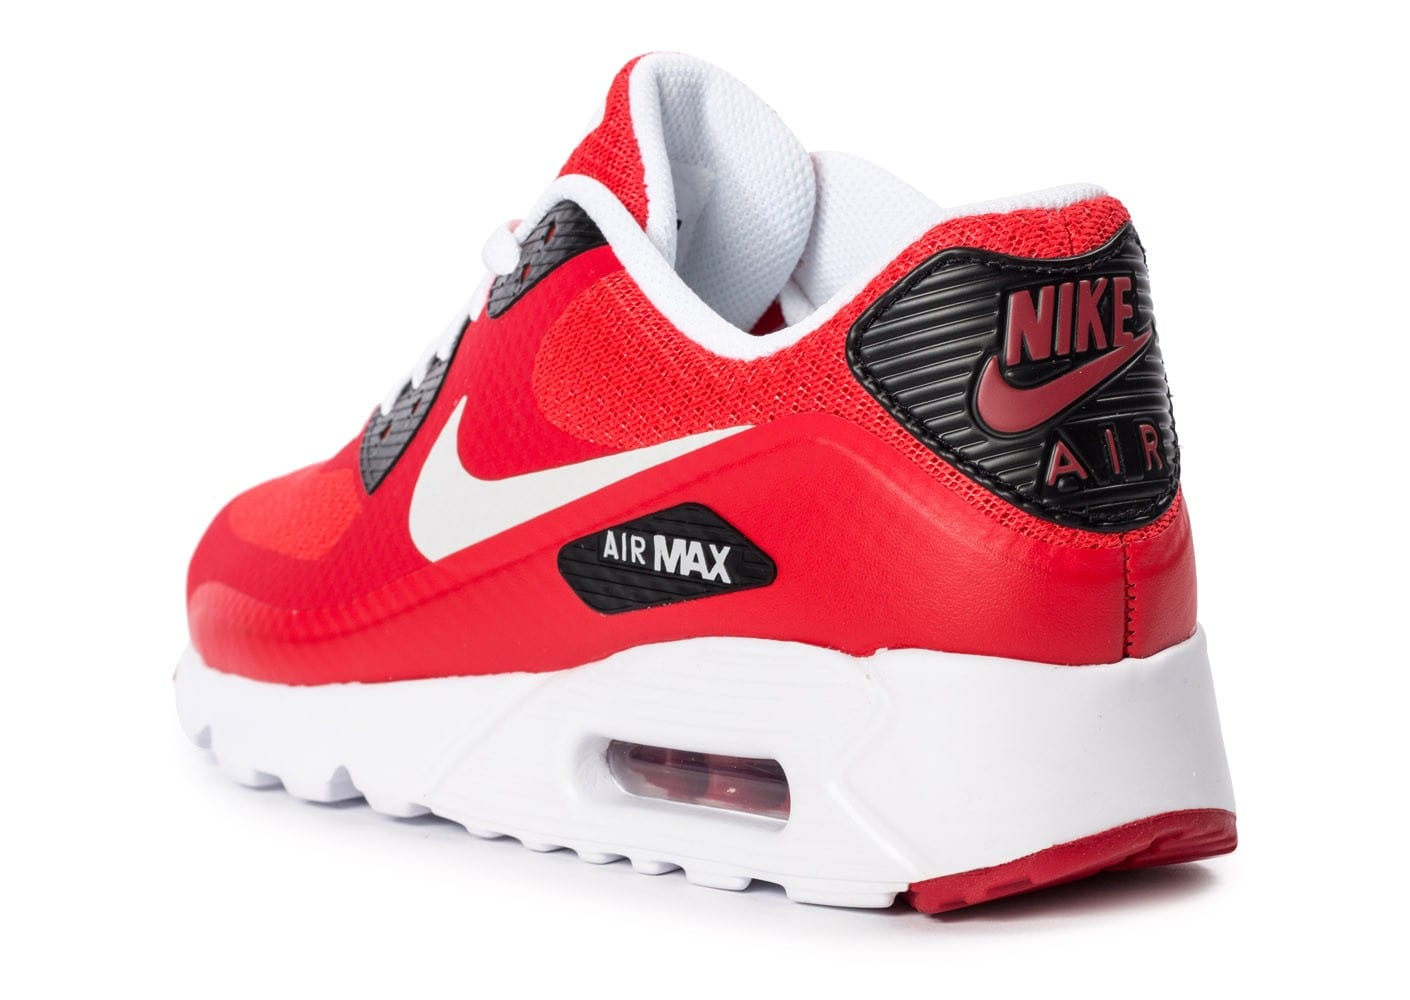 info for d7b6d 5da3b 137d2 d9703  good chaussures nike air max 90 ultra essential rouge vue  avant 787dc f1e43